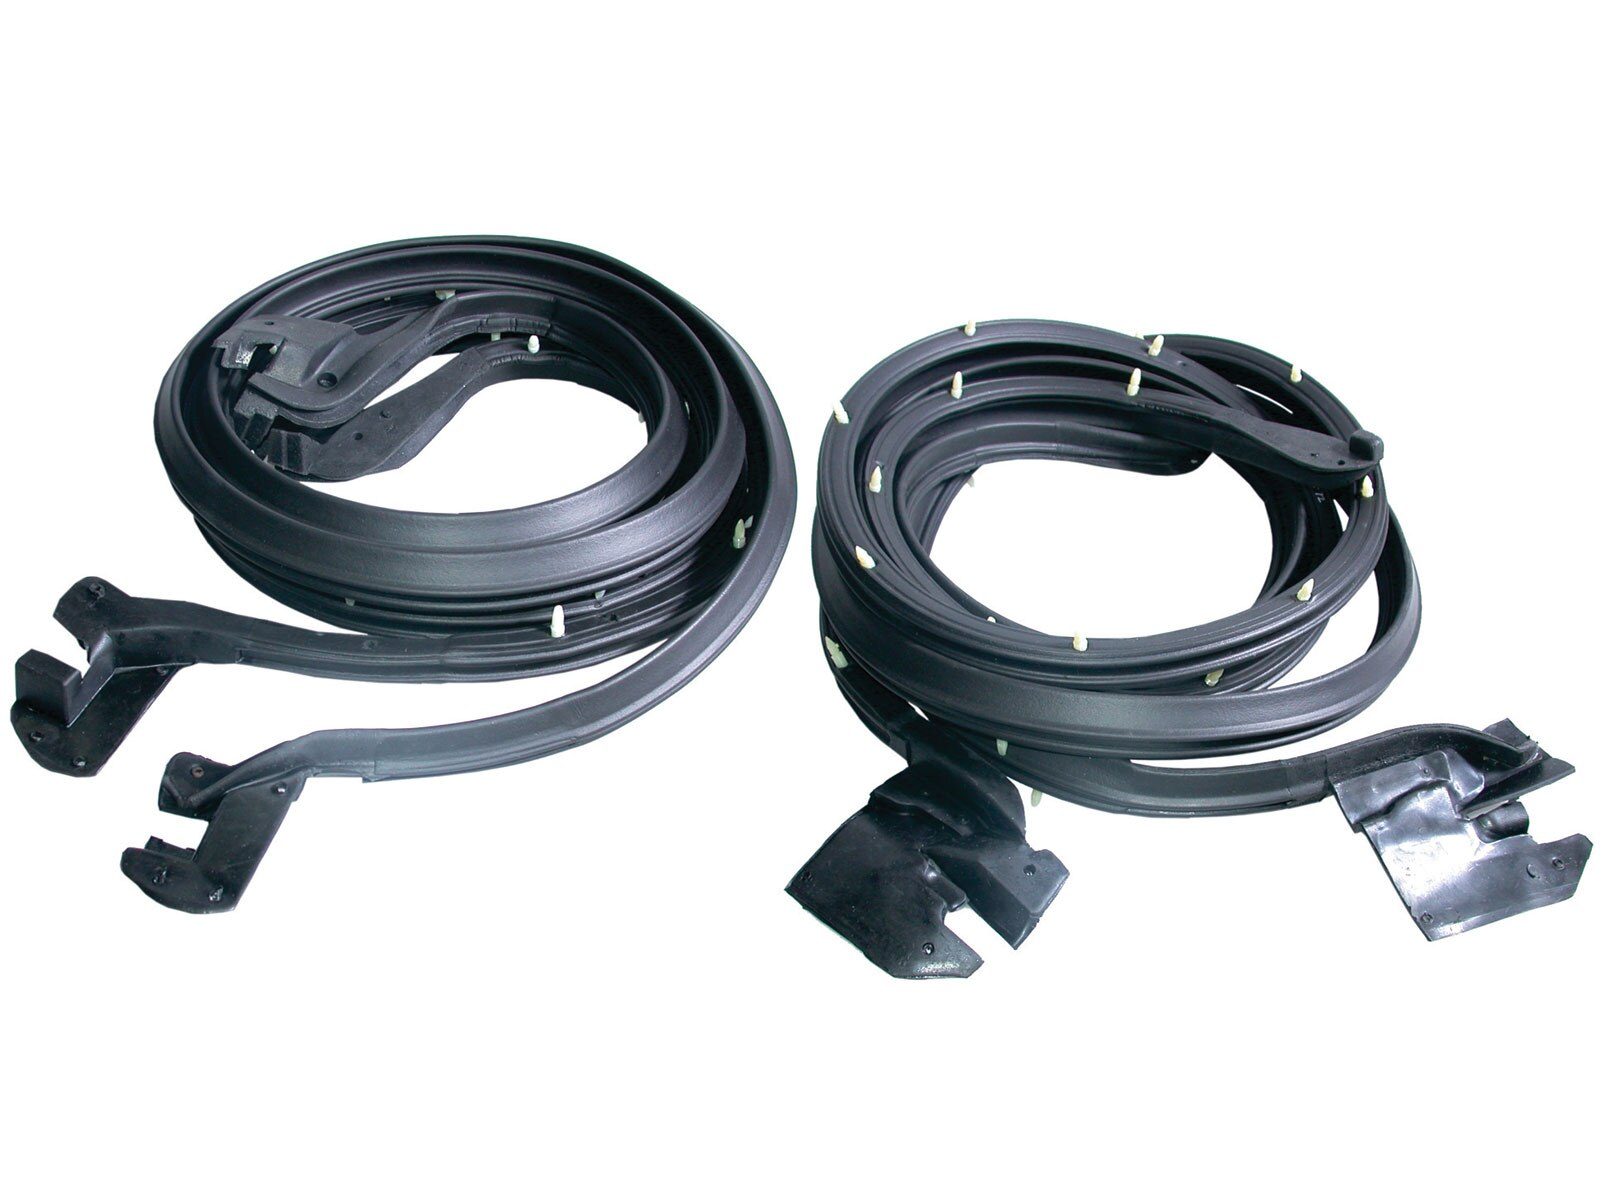 1209-lrmp-01-o-lowrider-parts-and-accessories-steel-rubber-seals1